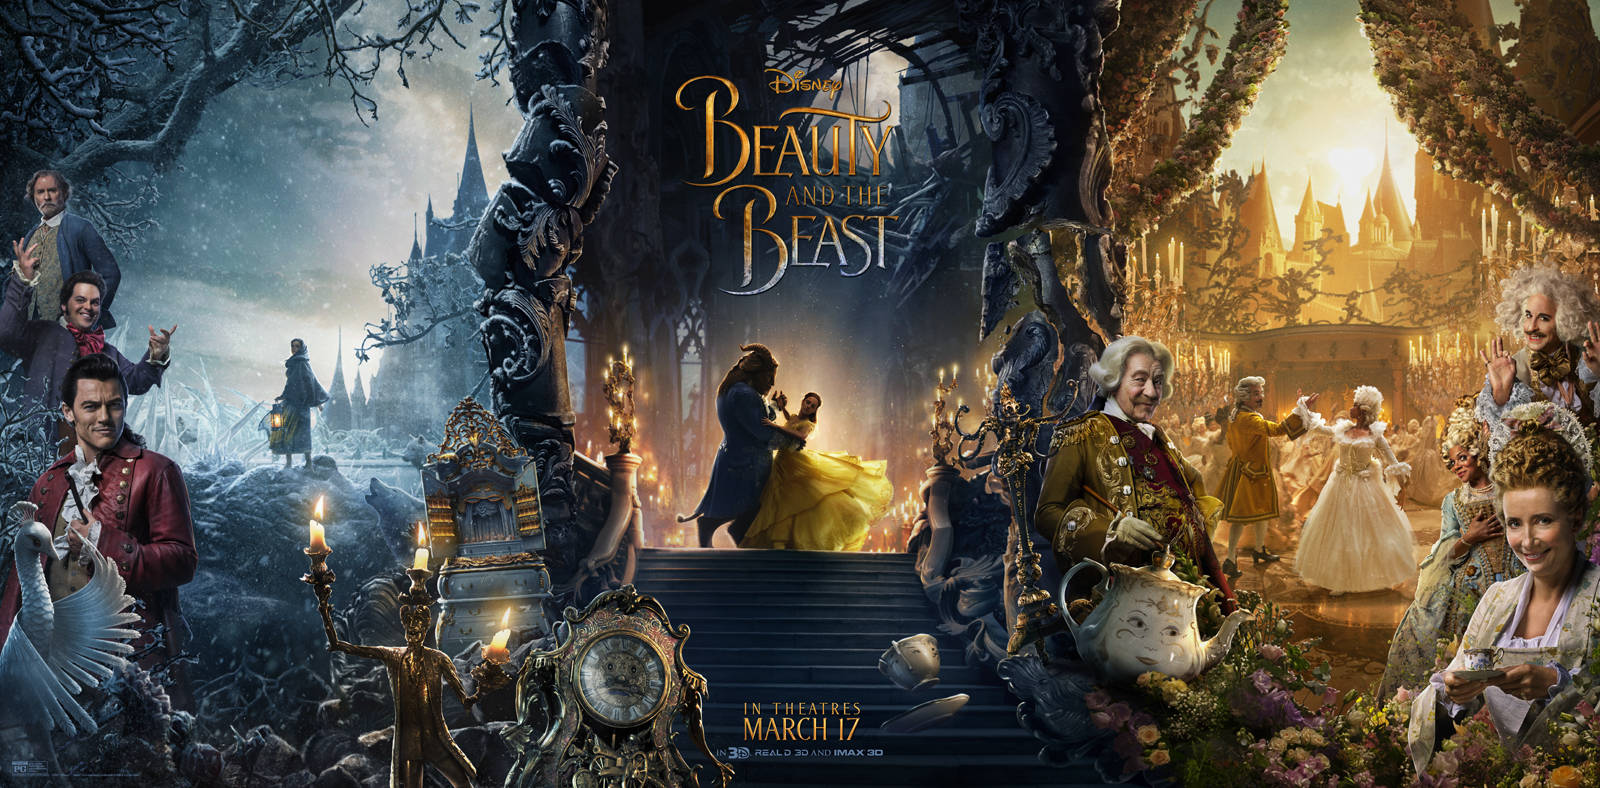 BEAUTY AND THE BEAST – Sing-Along Version Hits Theatres This Friday, April 7th!